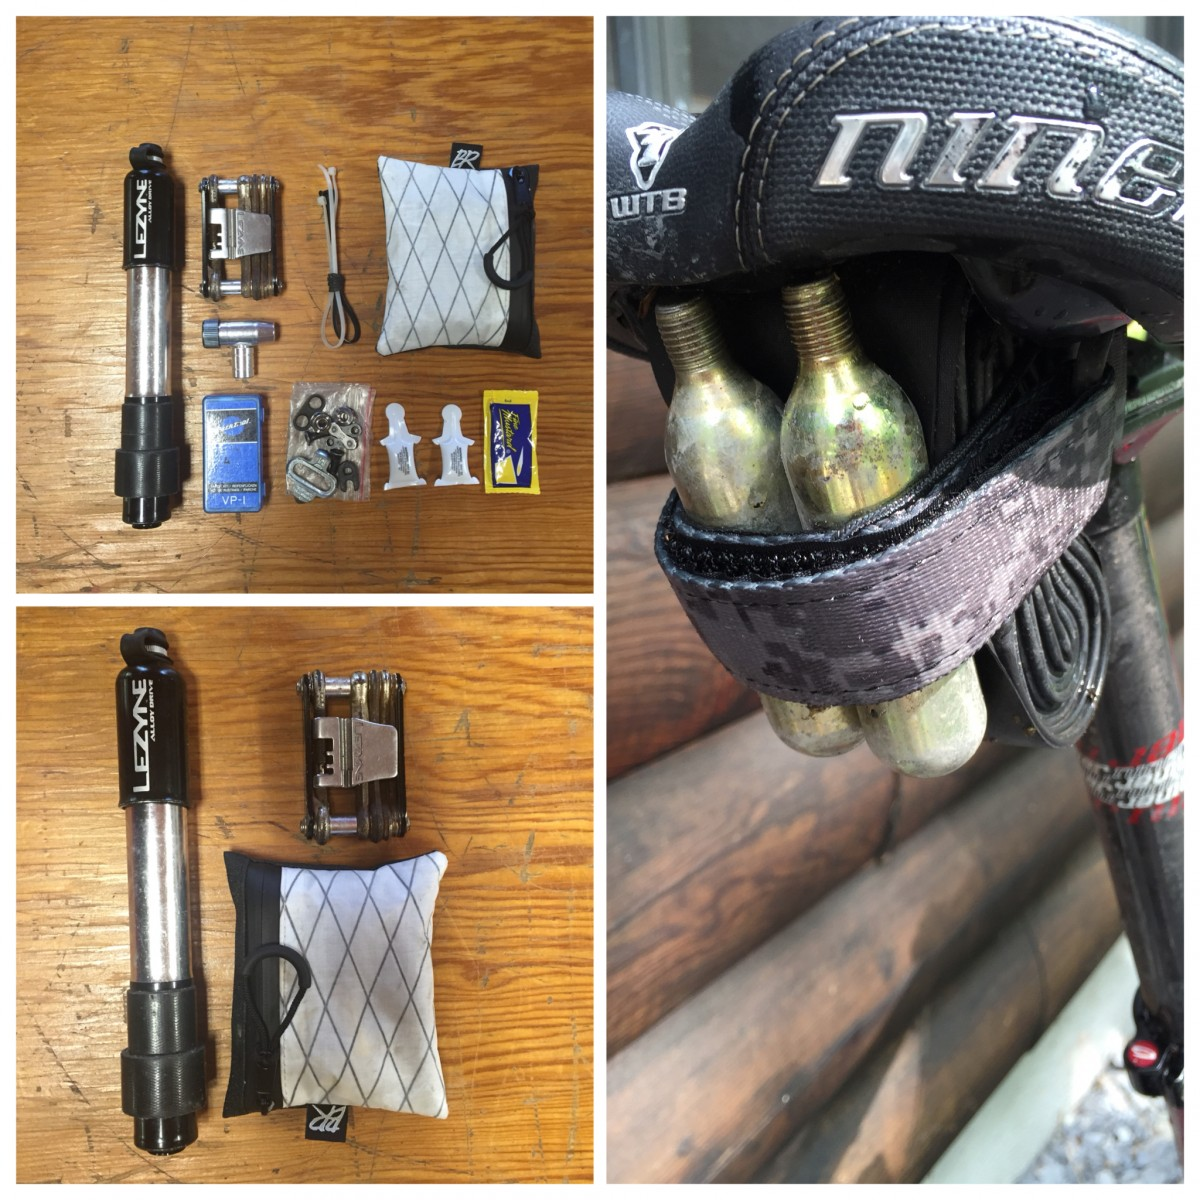 Here's what I carried in my jersey pockets. Everything except the pump and multitool fit in the pouch. A tube and CO2 cartridges were strapped to my saddle.